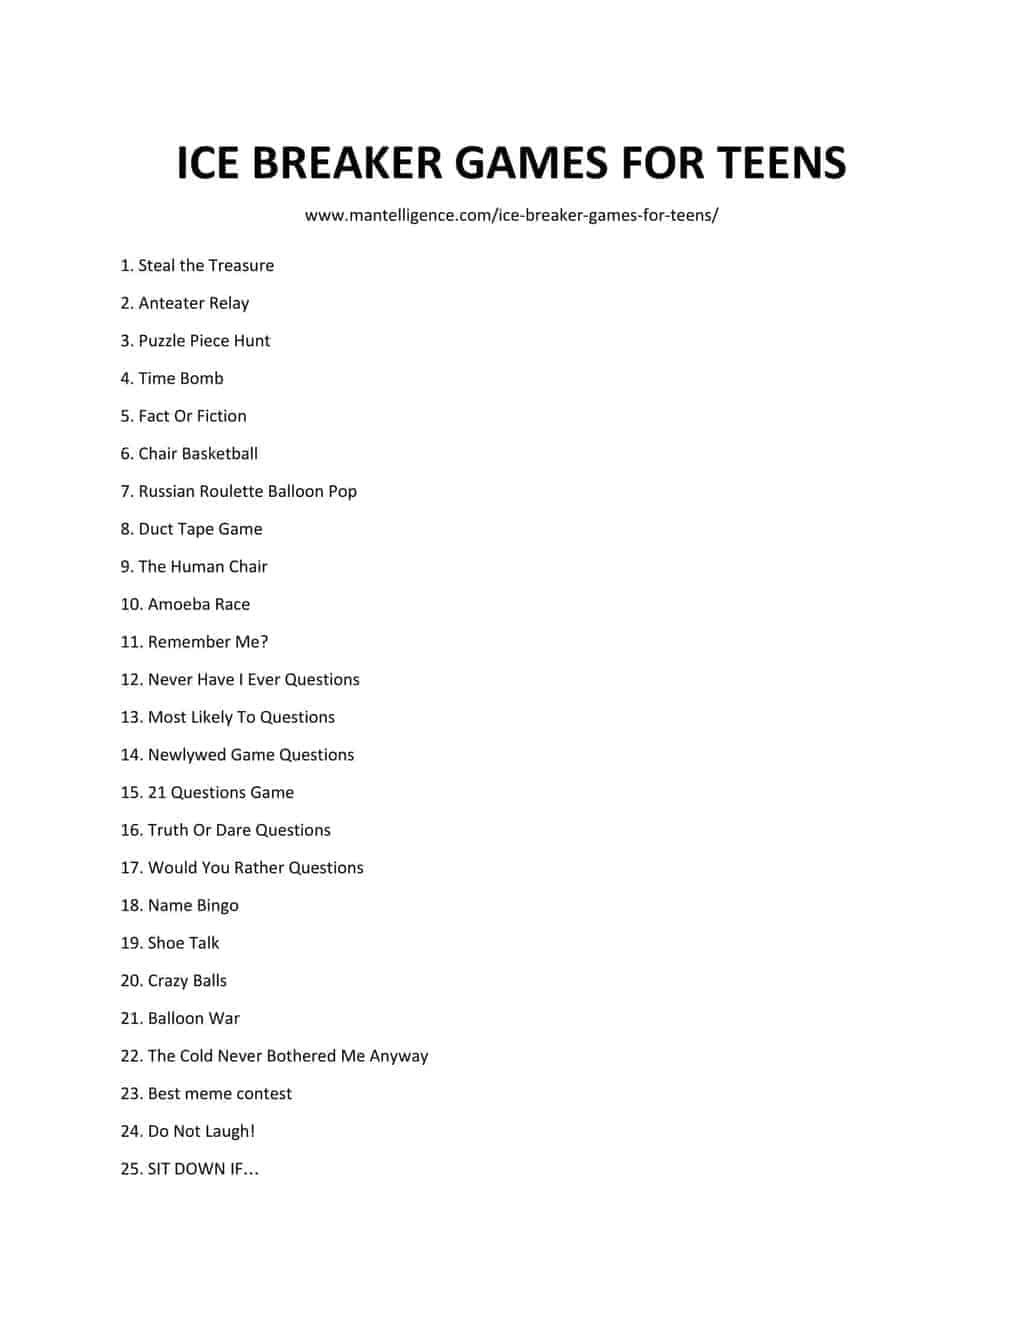 49 Best Ice Breaker Games For Teens